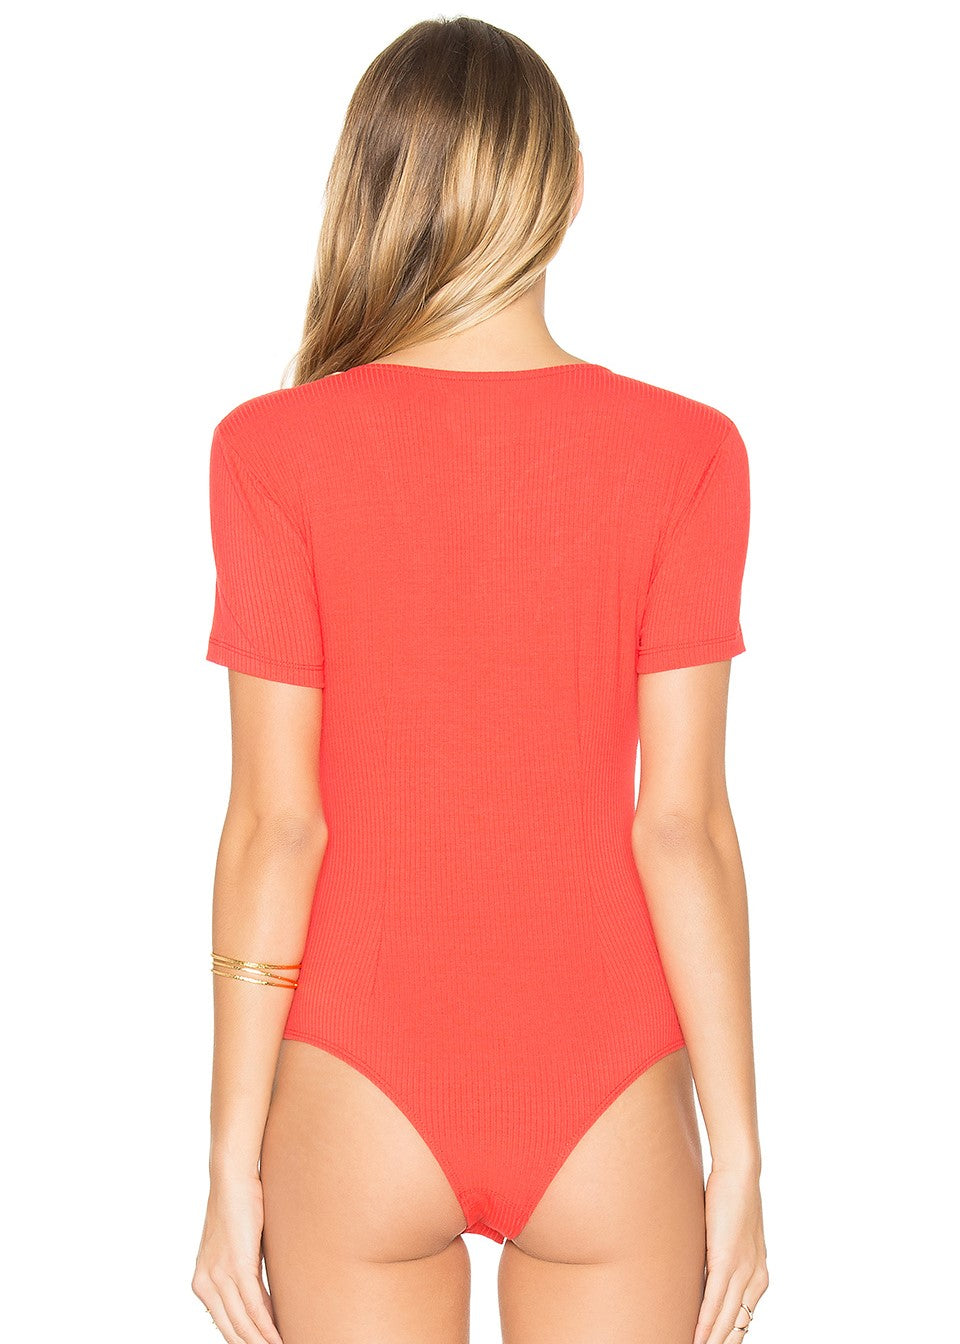 Privacy Please - Xenia Bodysuit X Revolve - Red Tie up Front Ribbed